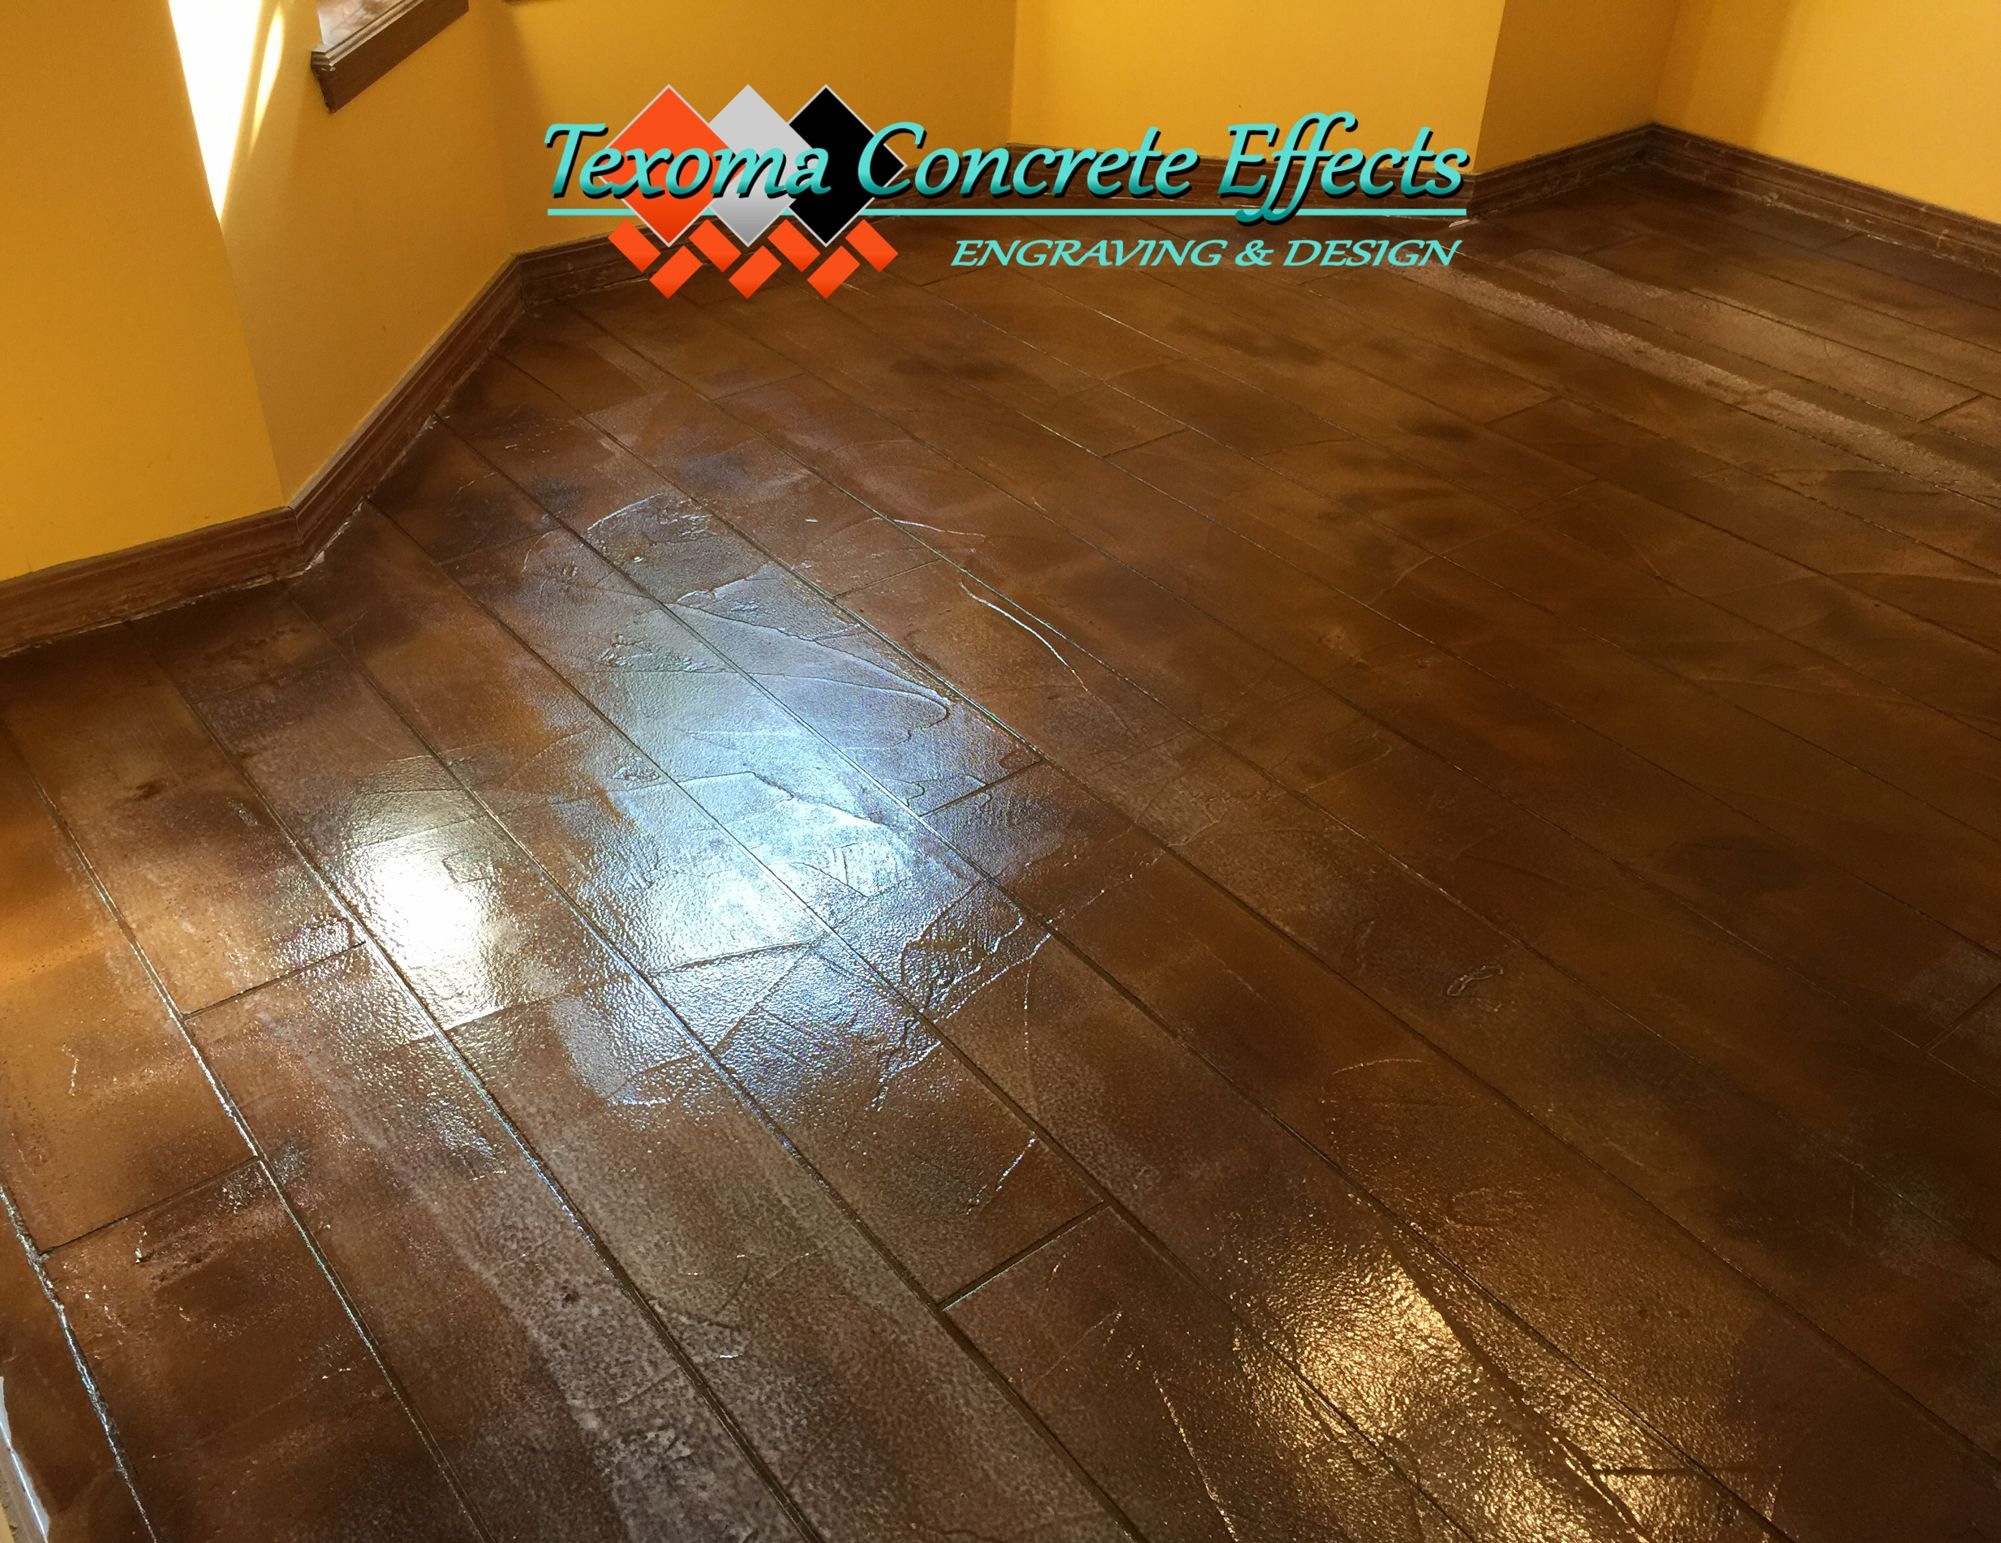 Stained Concrete Textured Overlay Wood Design By Texoma Concrete Effects Iowa Park Tx Concrete Texture Stained Concrete Concrete